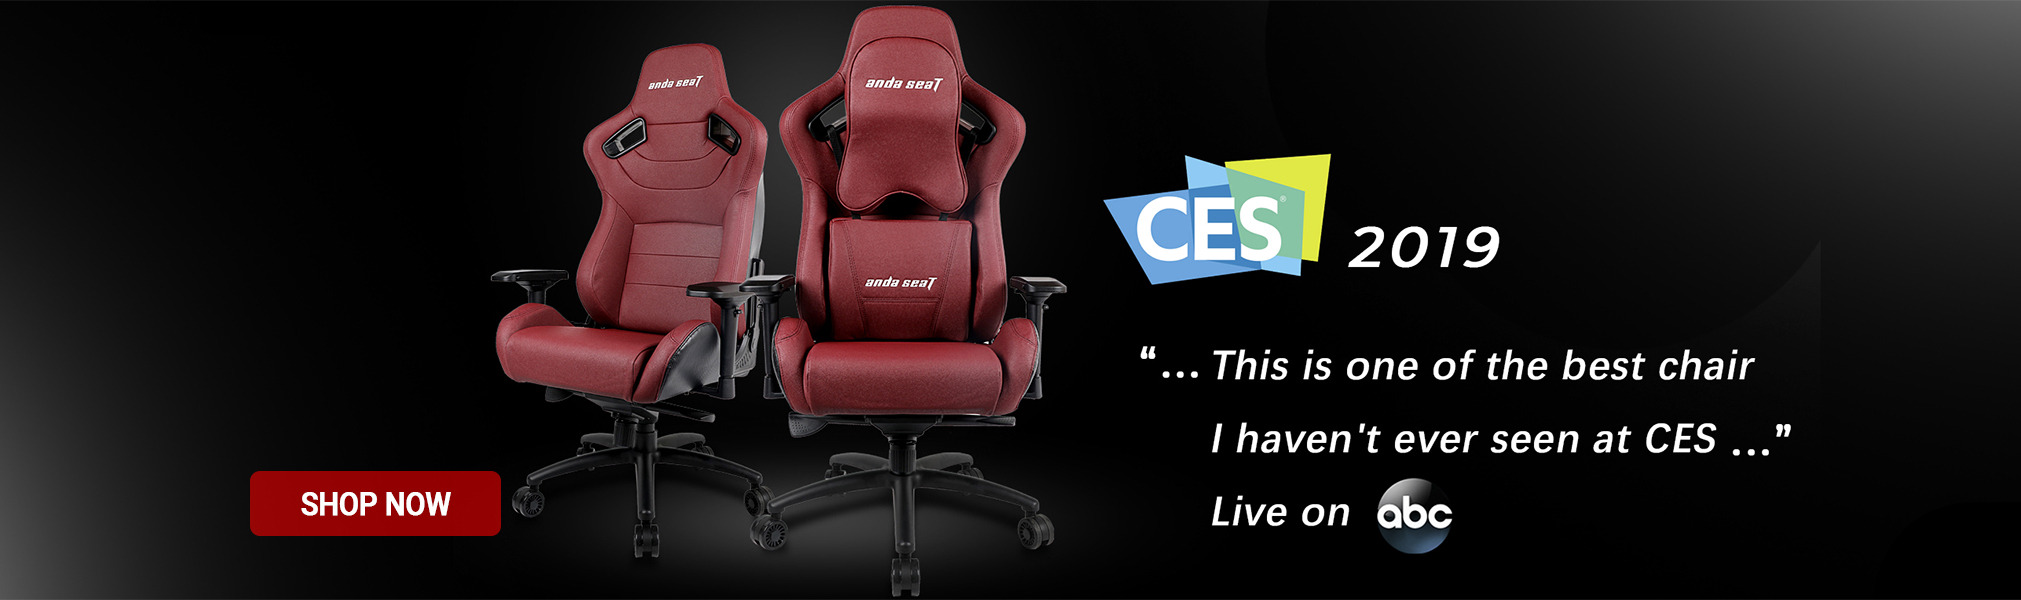 CES - one of the best chair - Anda Seat